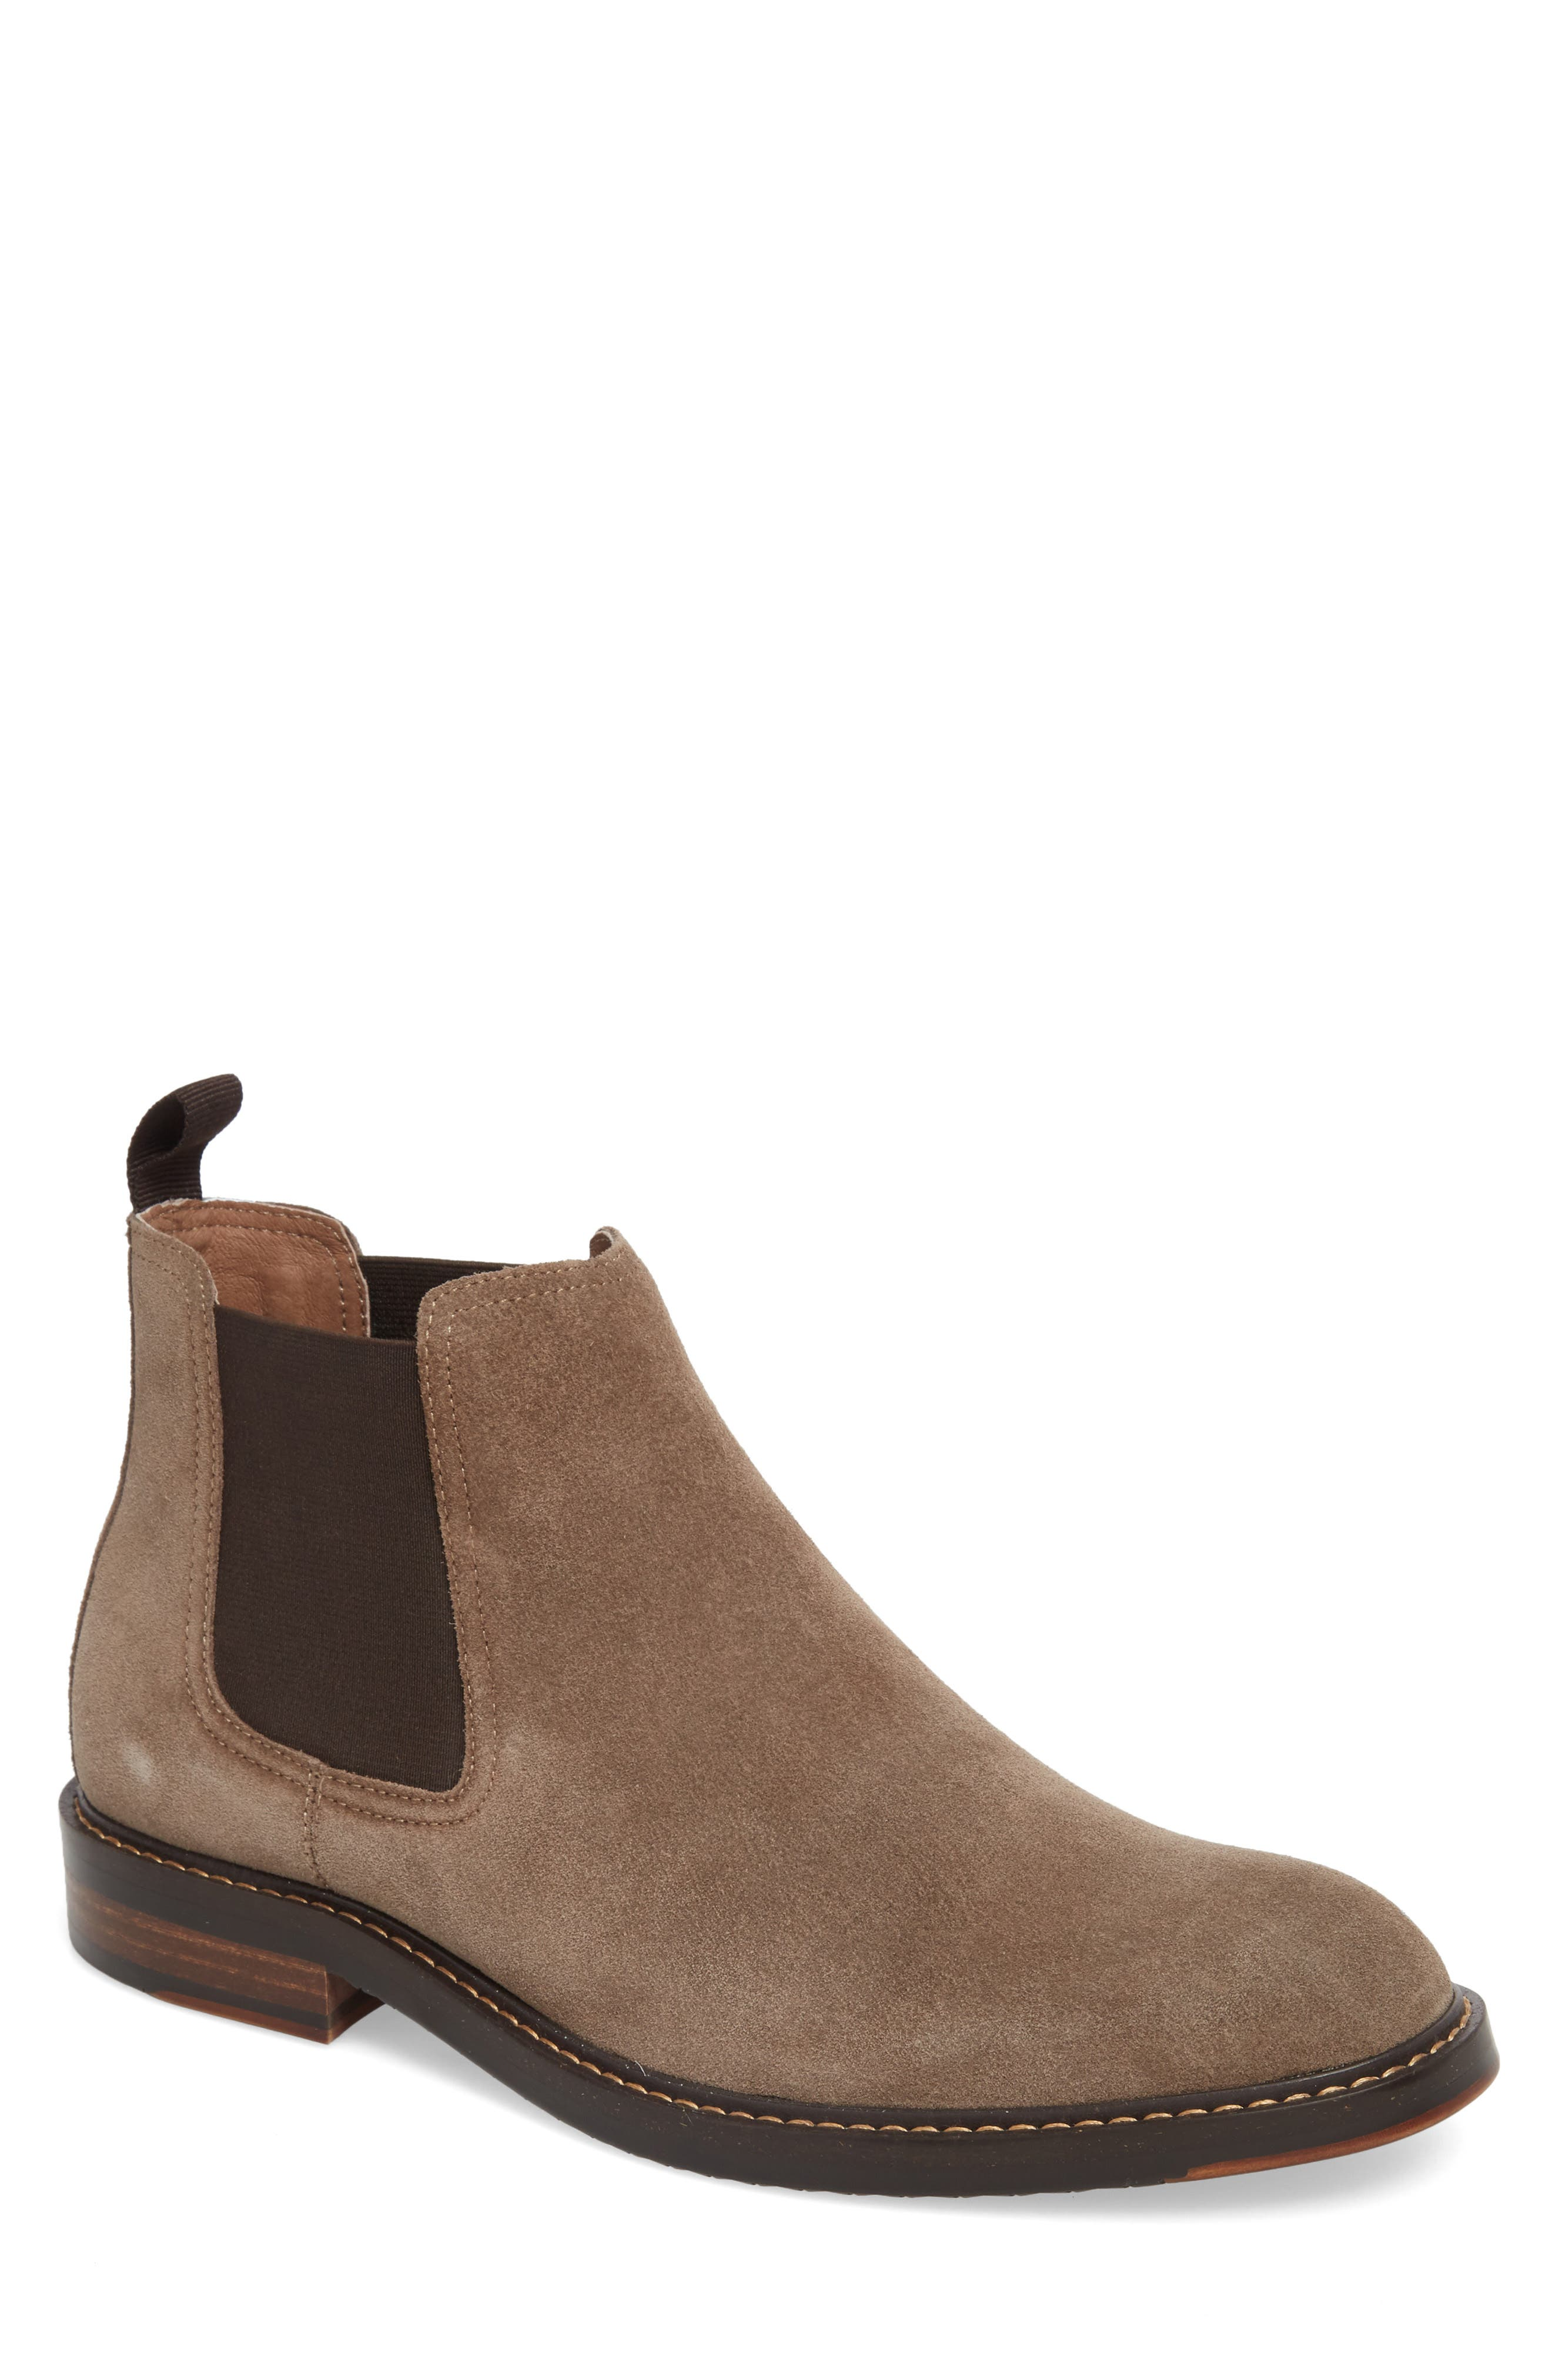 Brooks Chelsea Boot,                         Main,                         color, TAUPE SUEDE